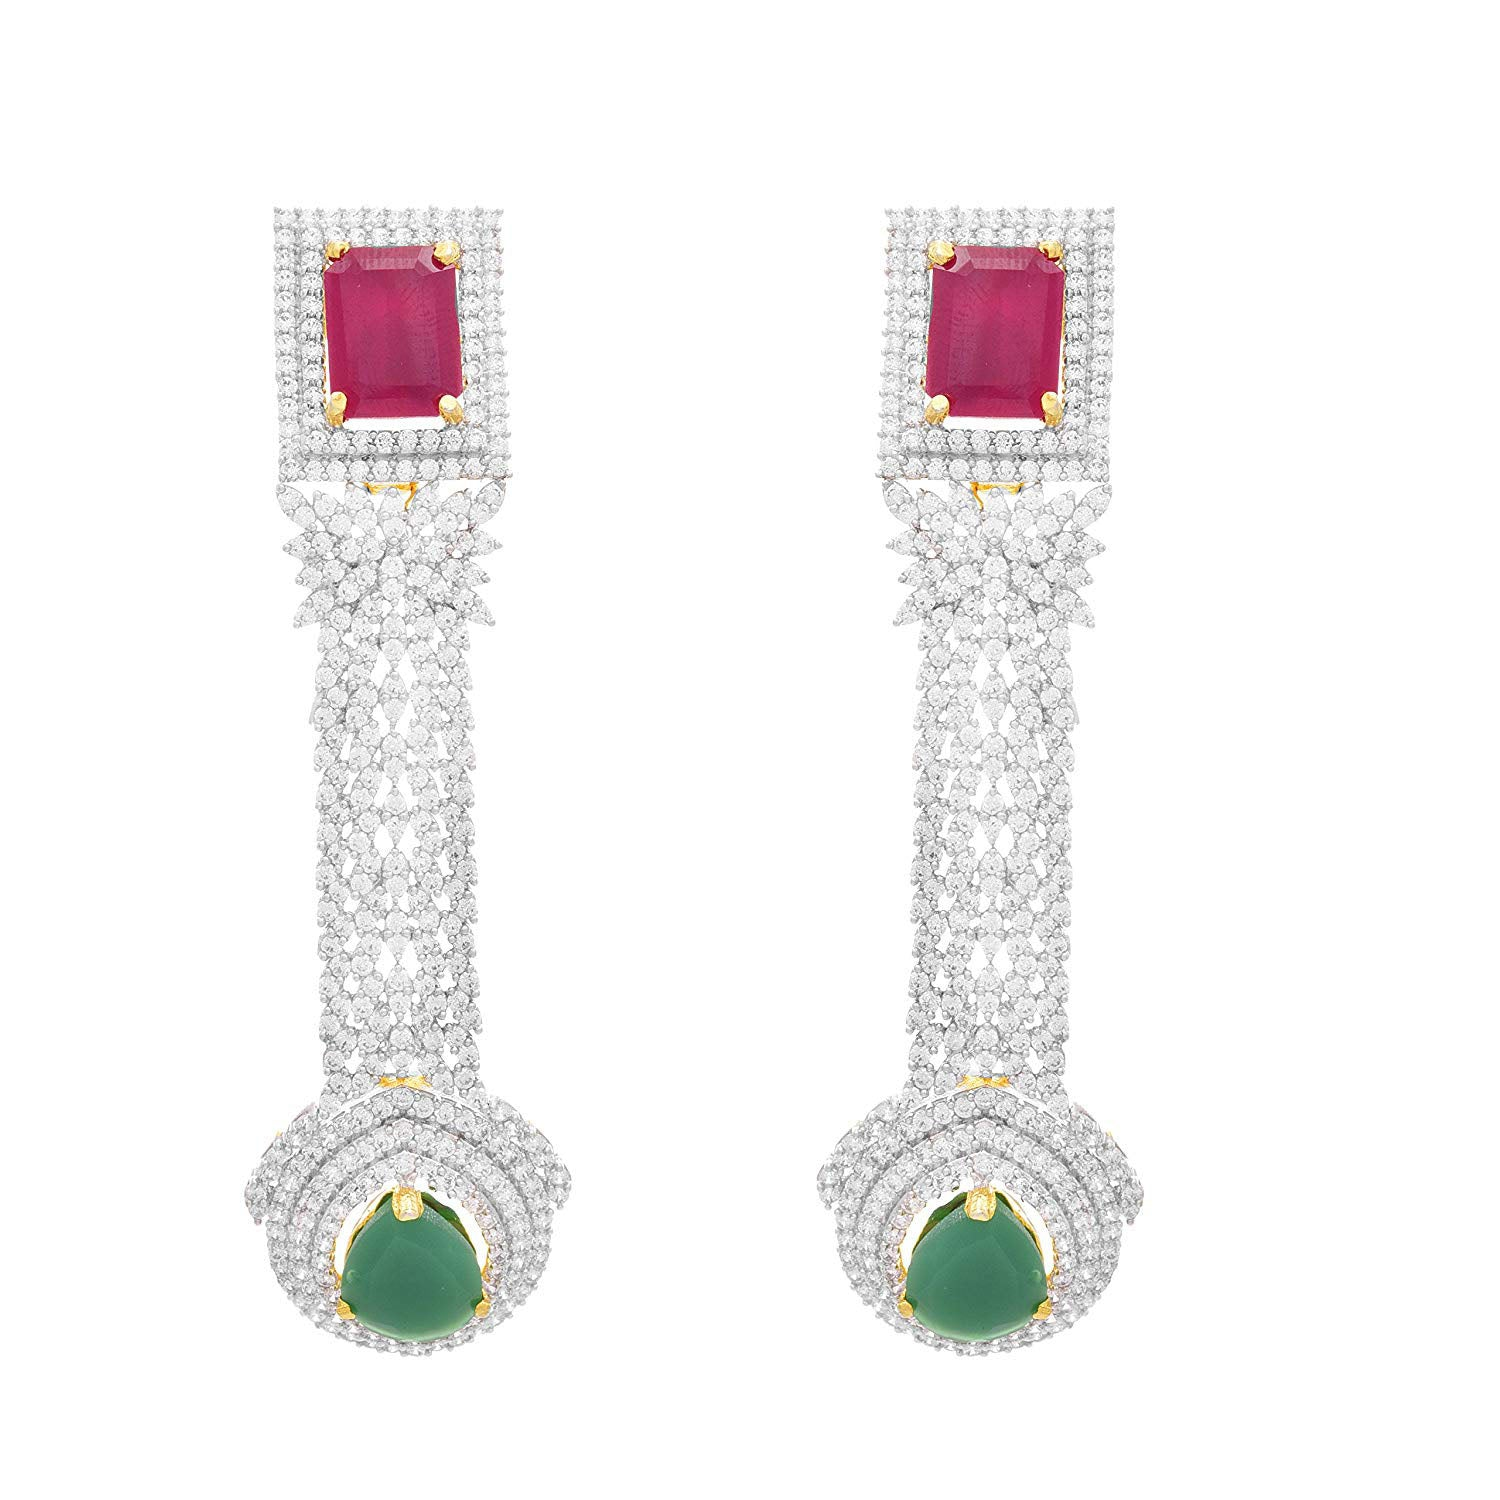 JFL- Fusion Ethnic One Gram Gold Plated Cz American Diamond Designer Earrings for Women and Girls.